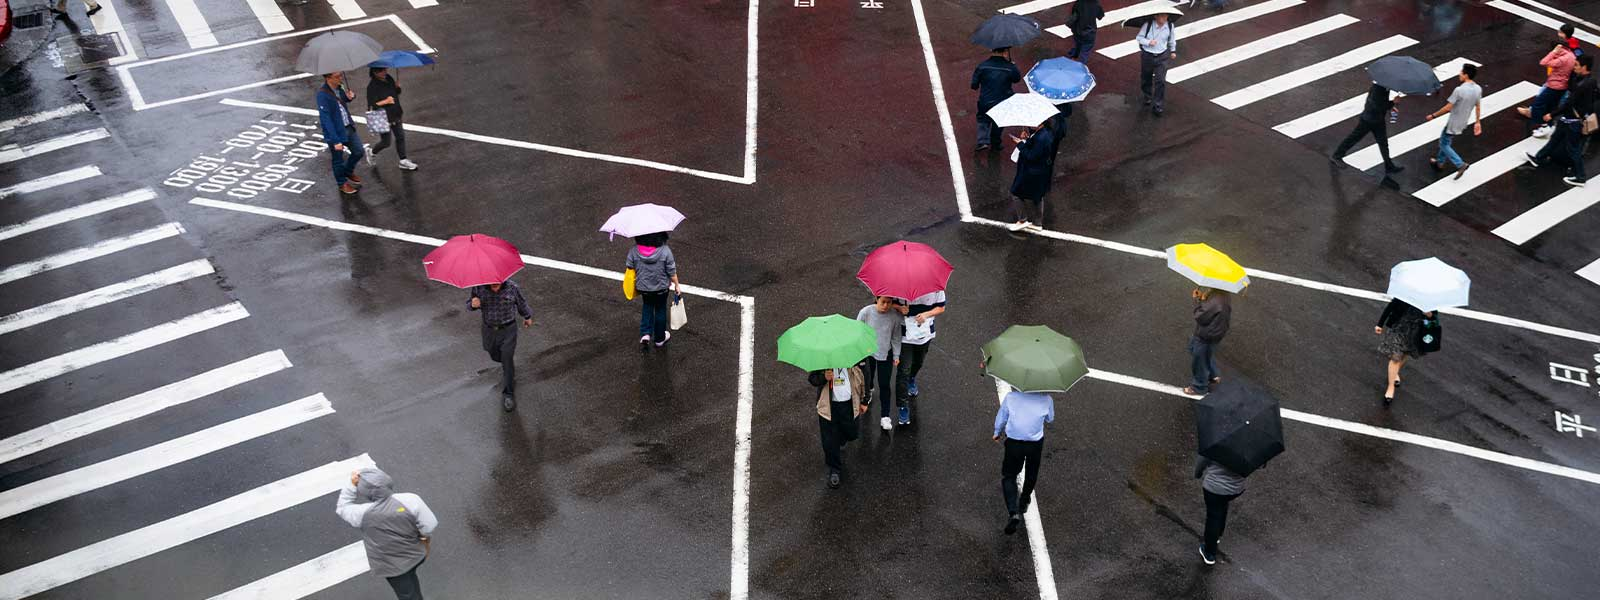 people with umbrellas on Taipei crosswalk